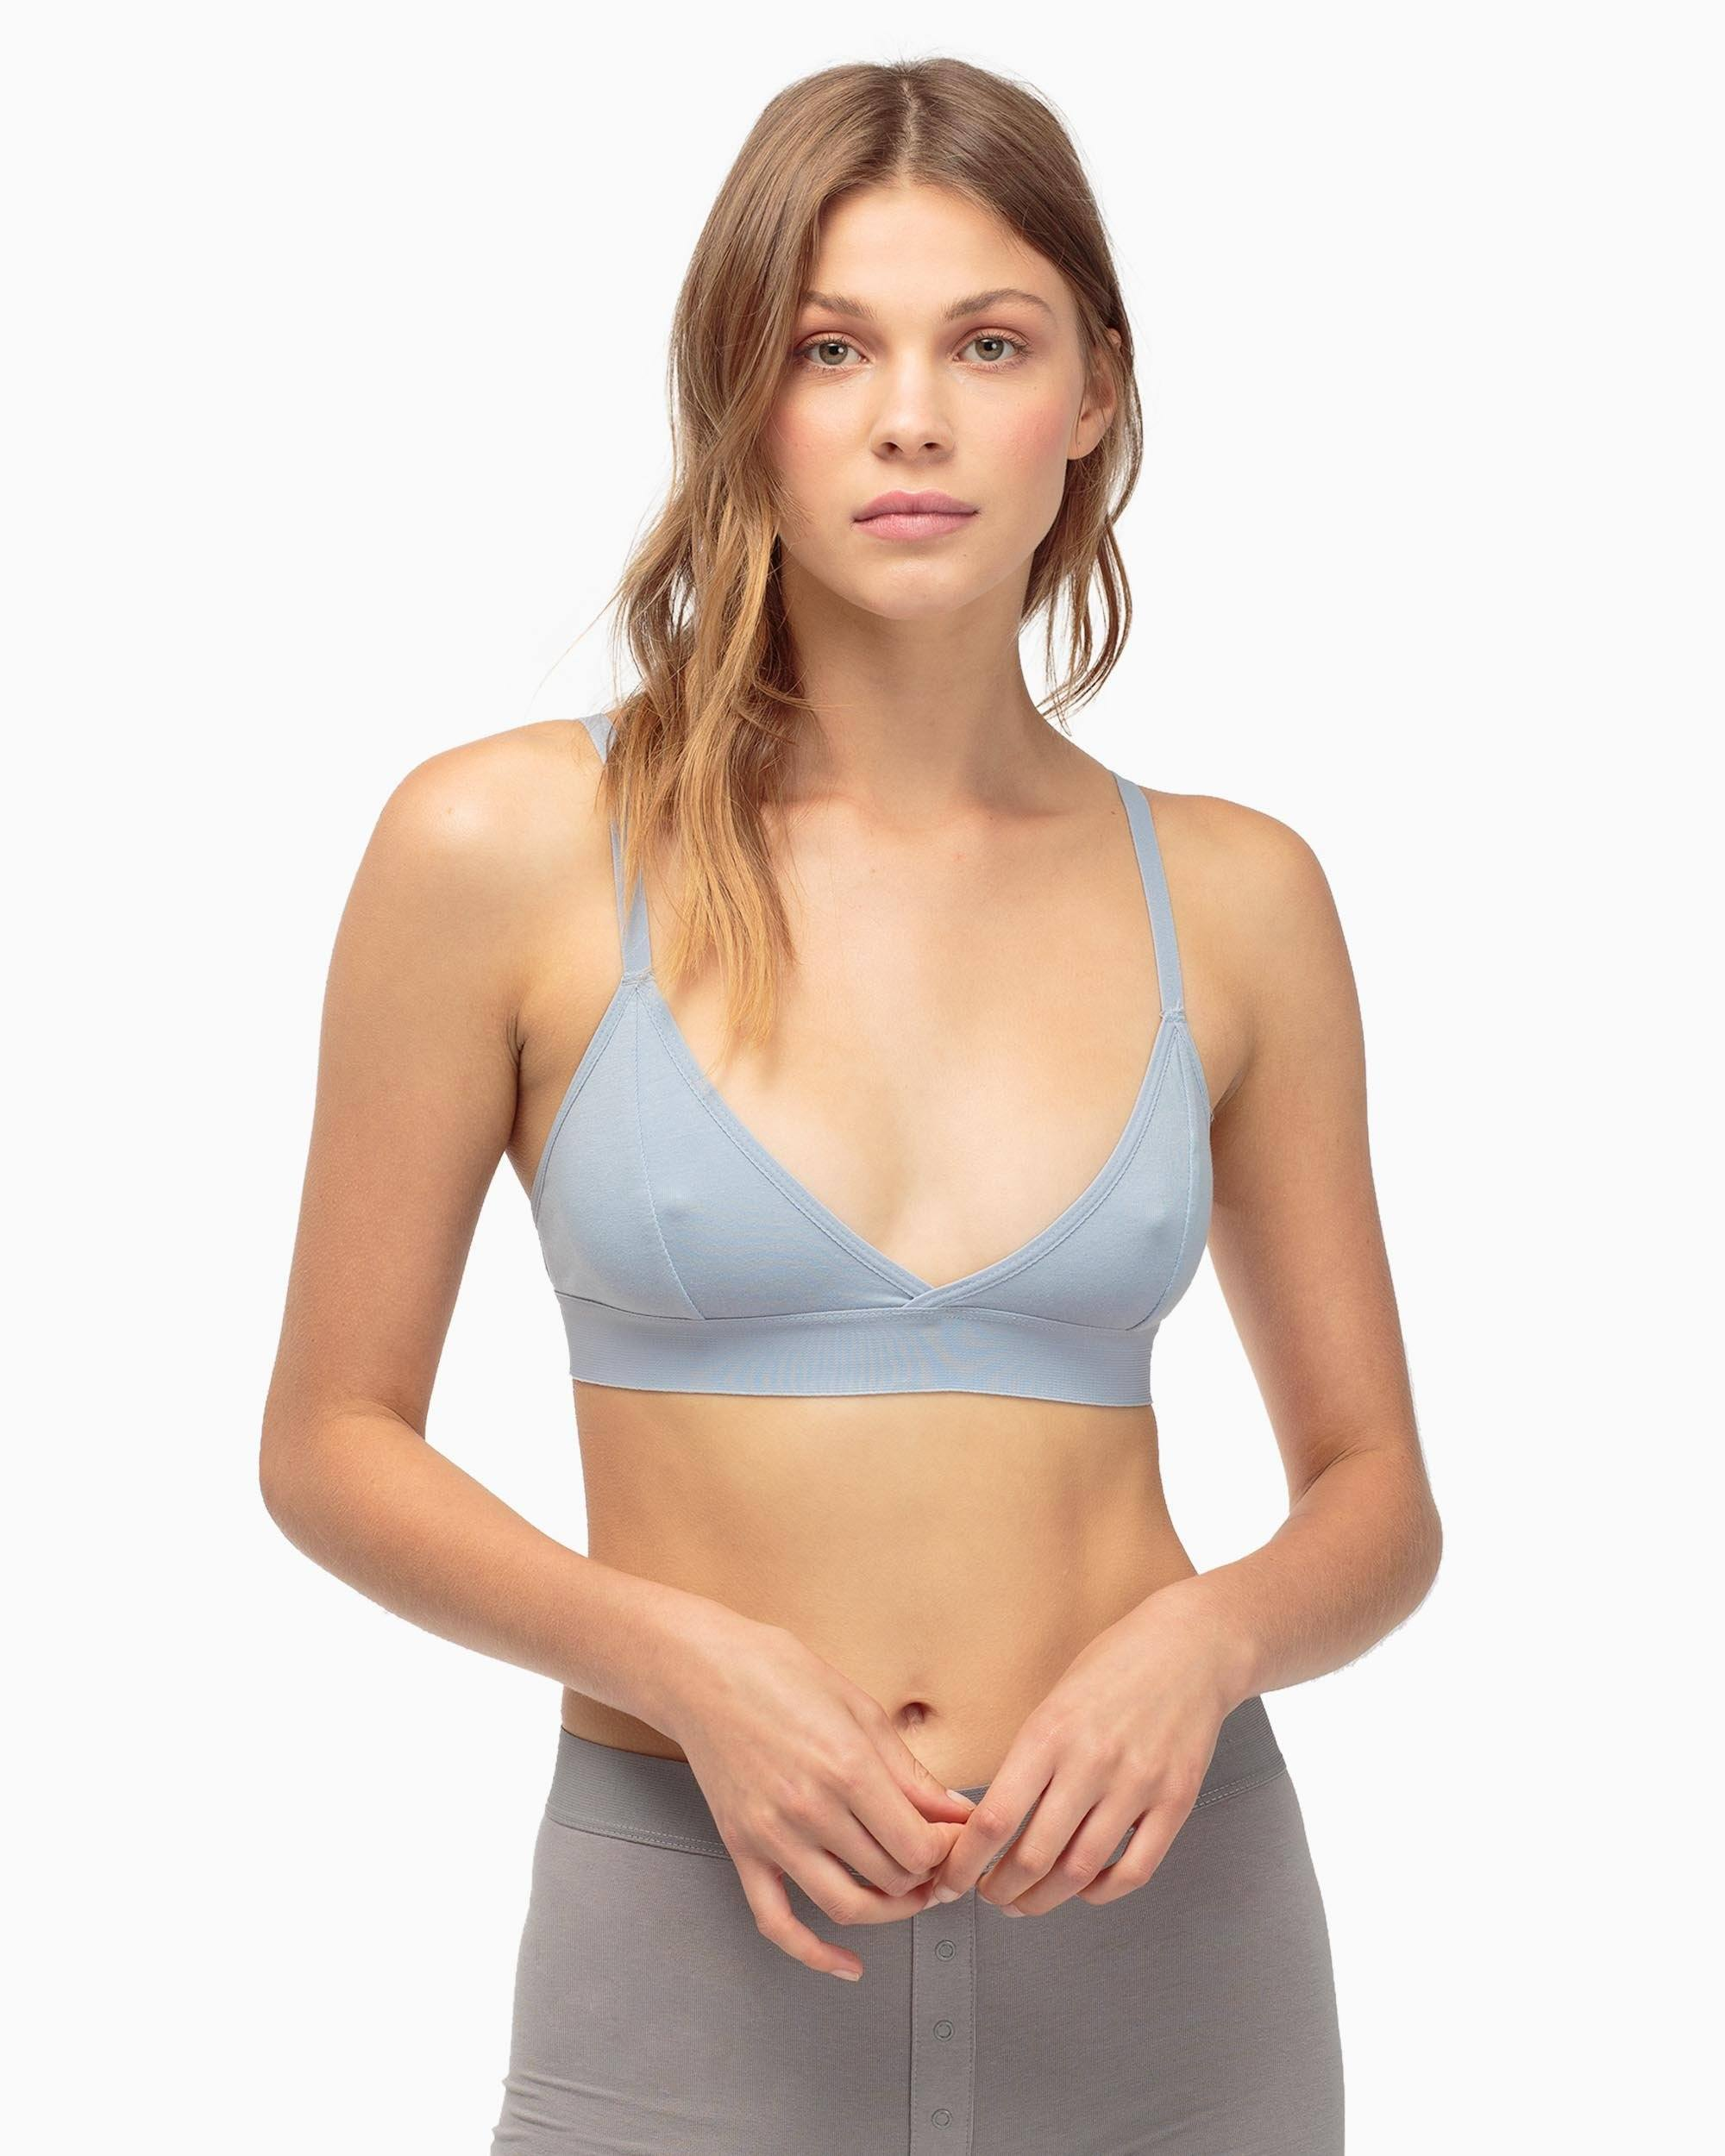 787adc958 Most Comfortable Bras 2019 Reviews